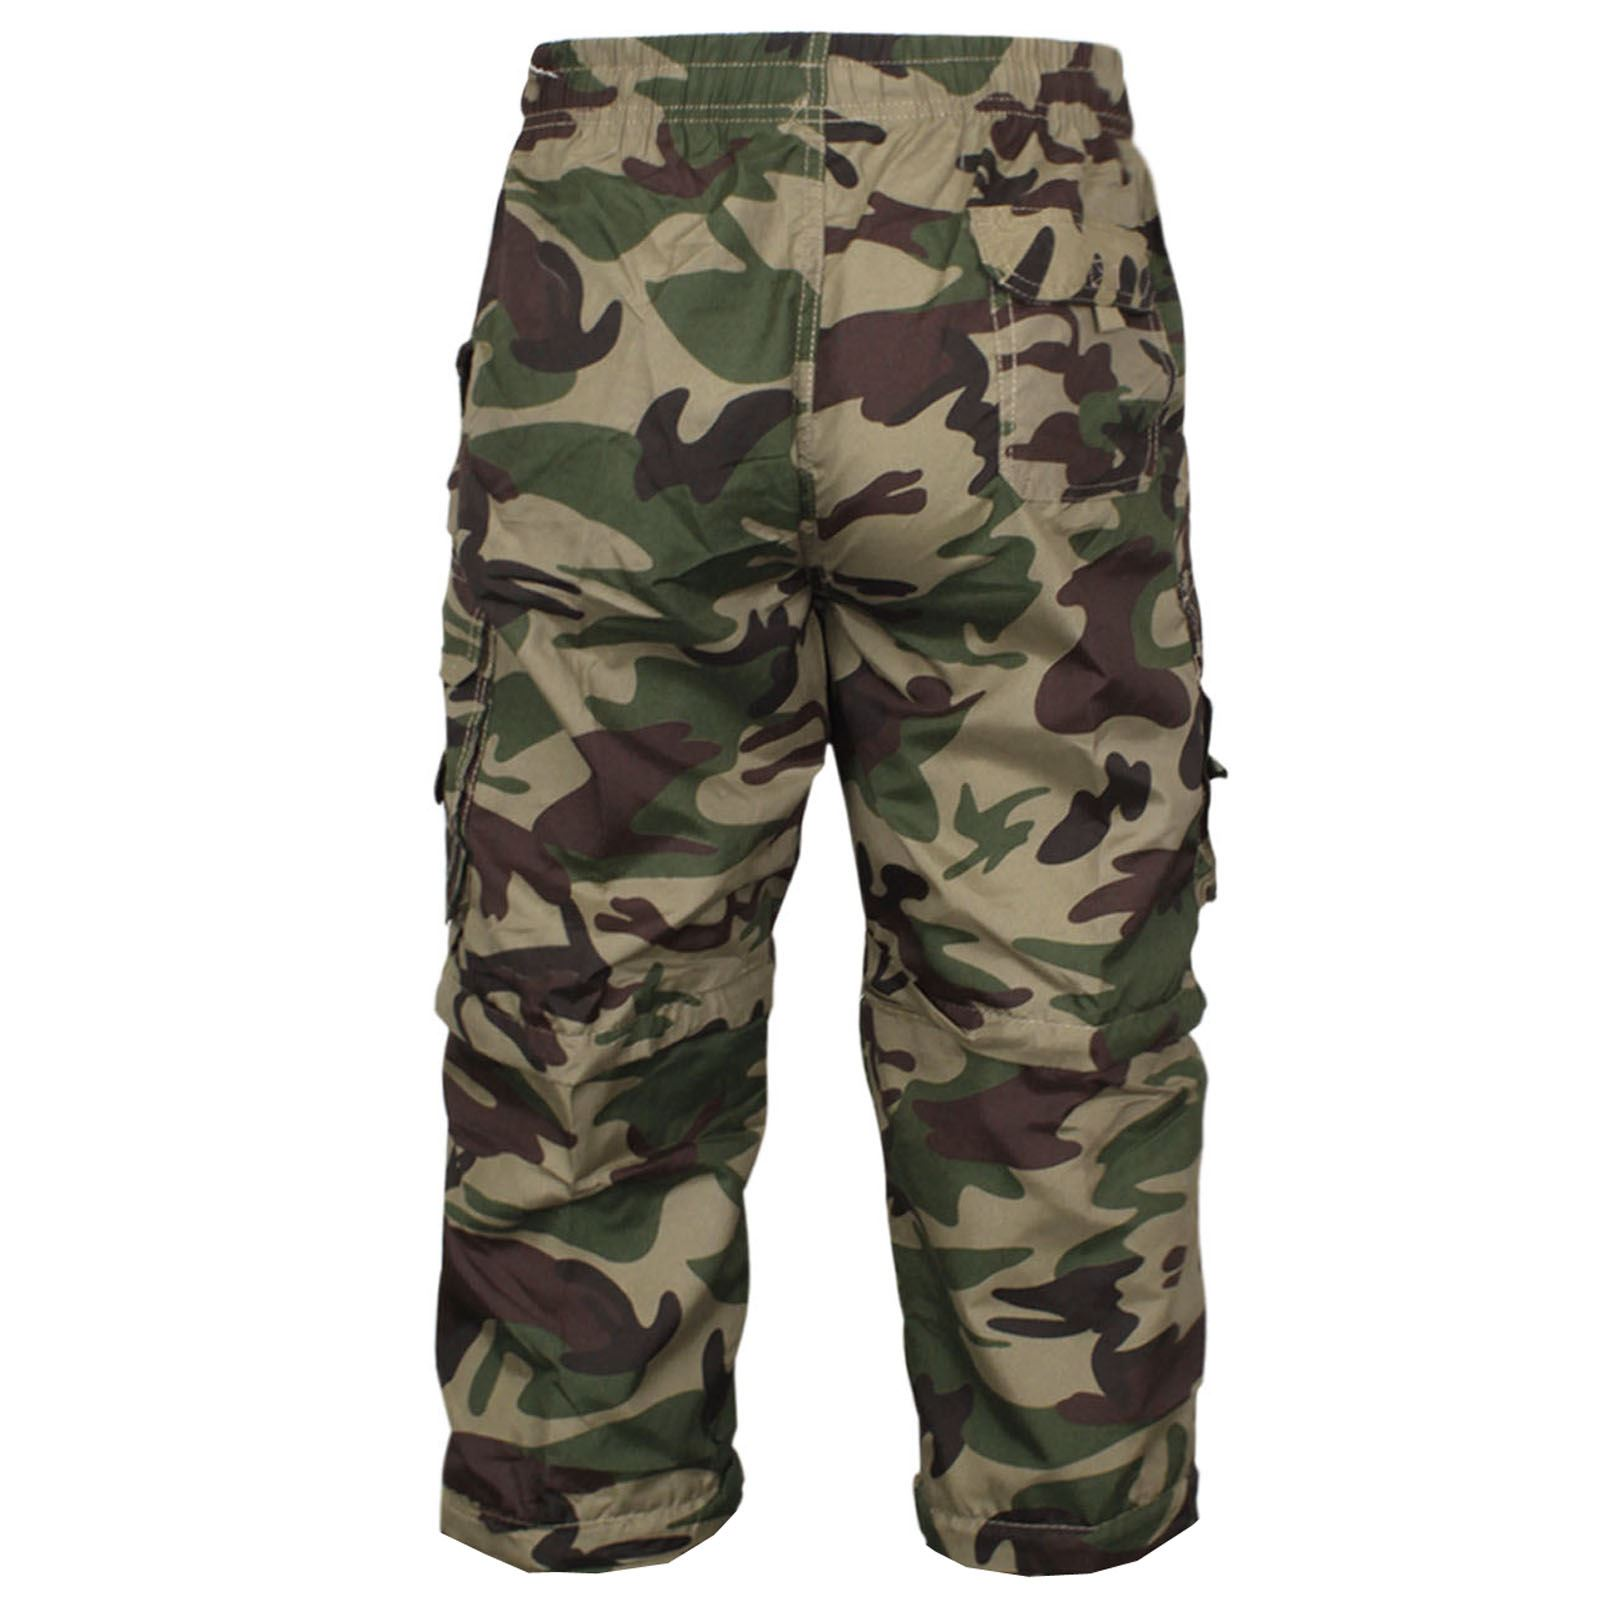 MENS 2 IN 1 CAMOUFLAGE SHORTS ARMY ZIP OFF COMBAT CARGO TROUSERS WORK PANT S-2XL